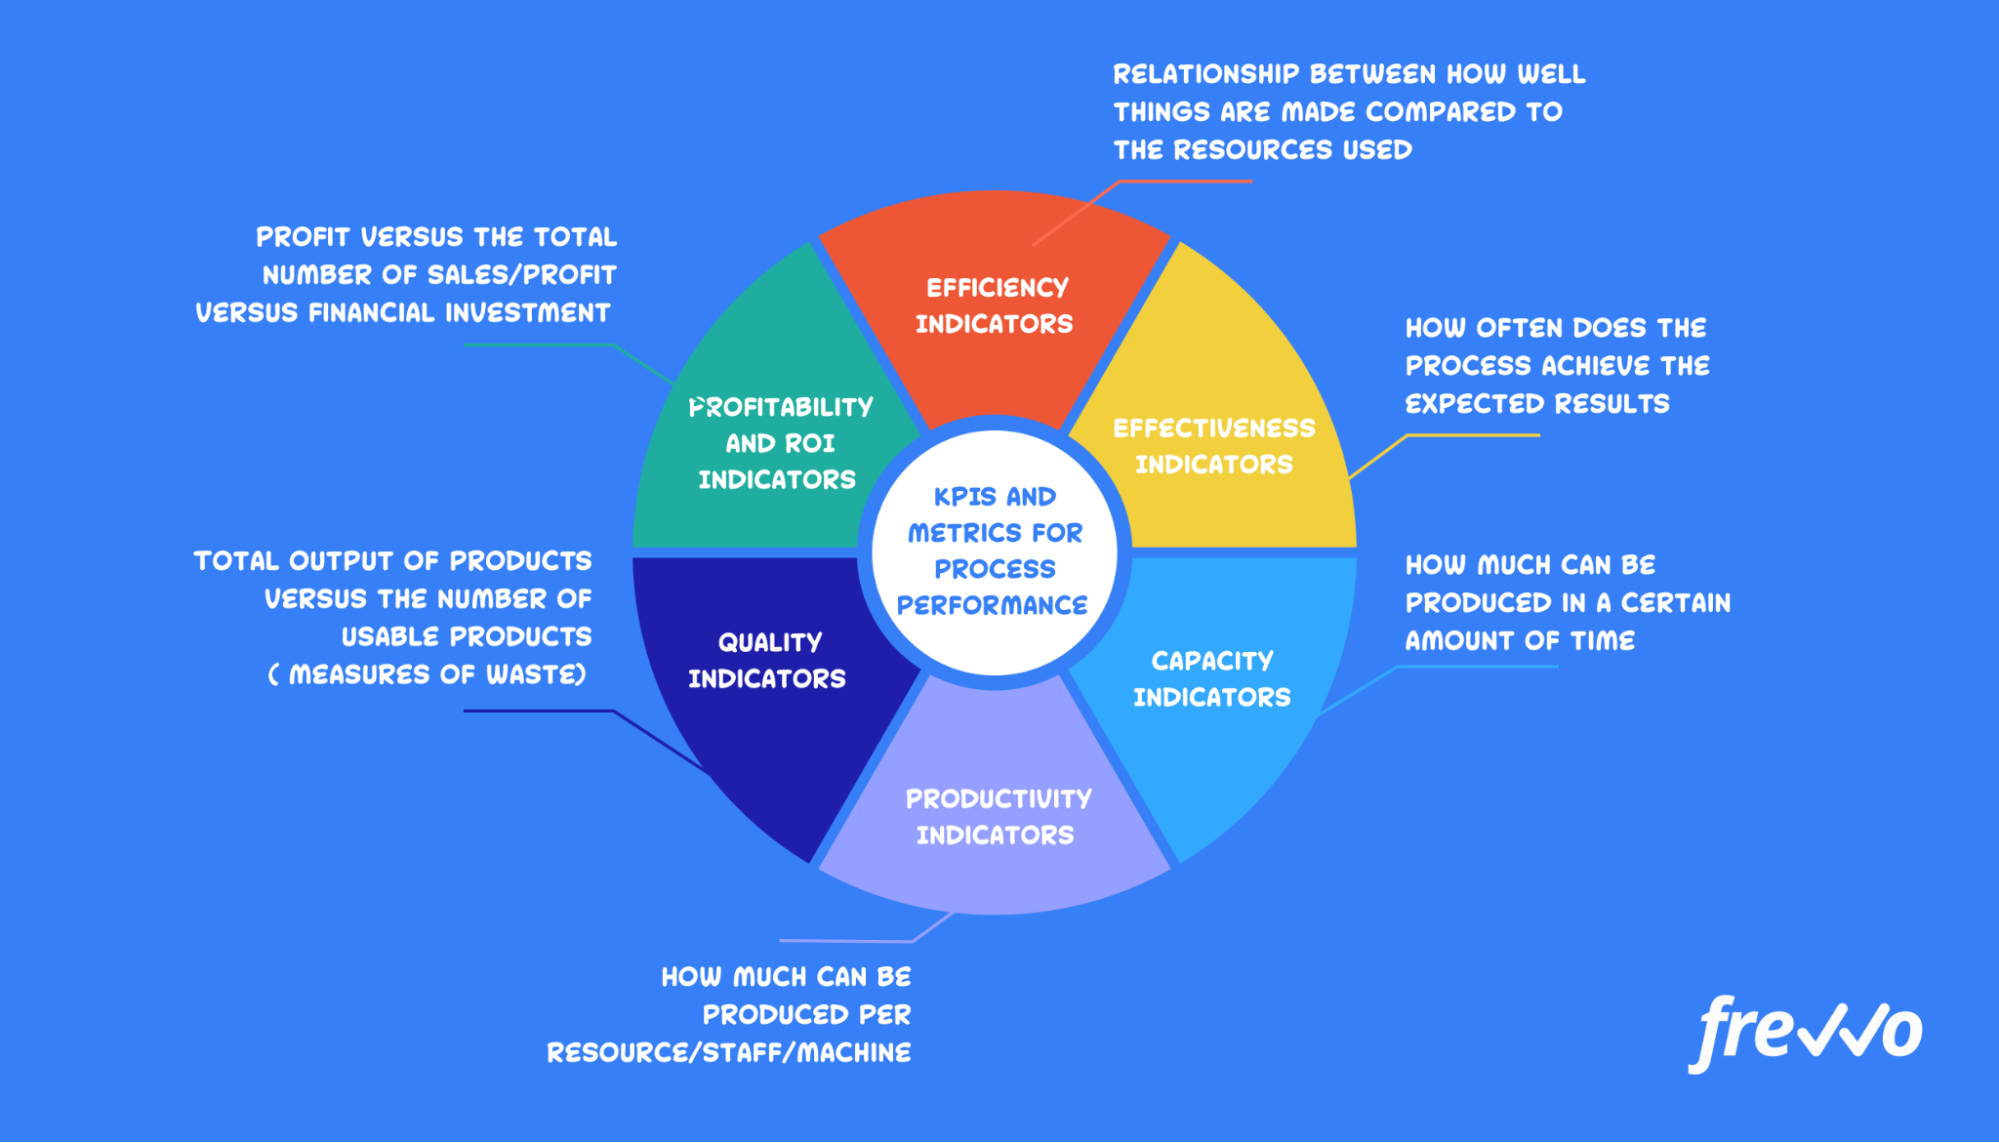 KPIs and metrics for process performance